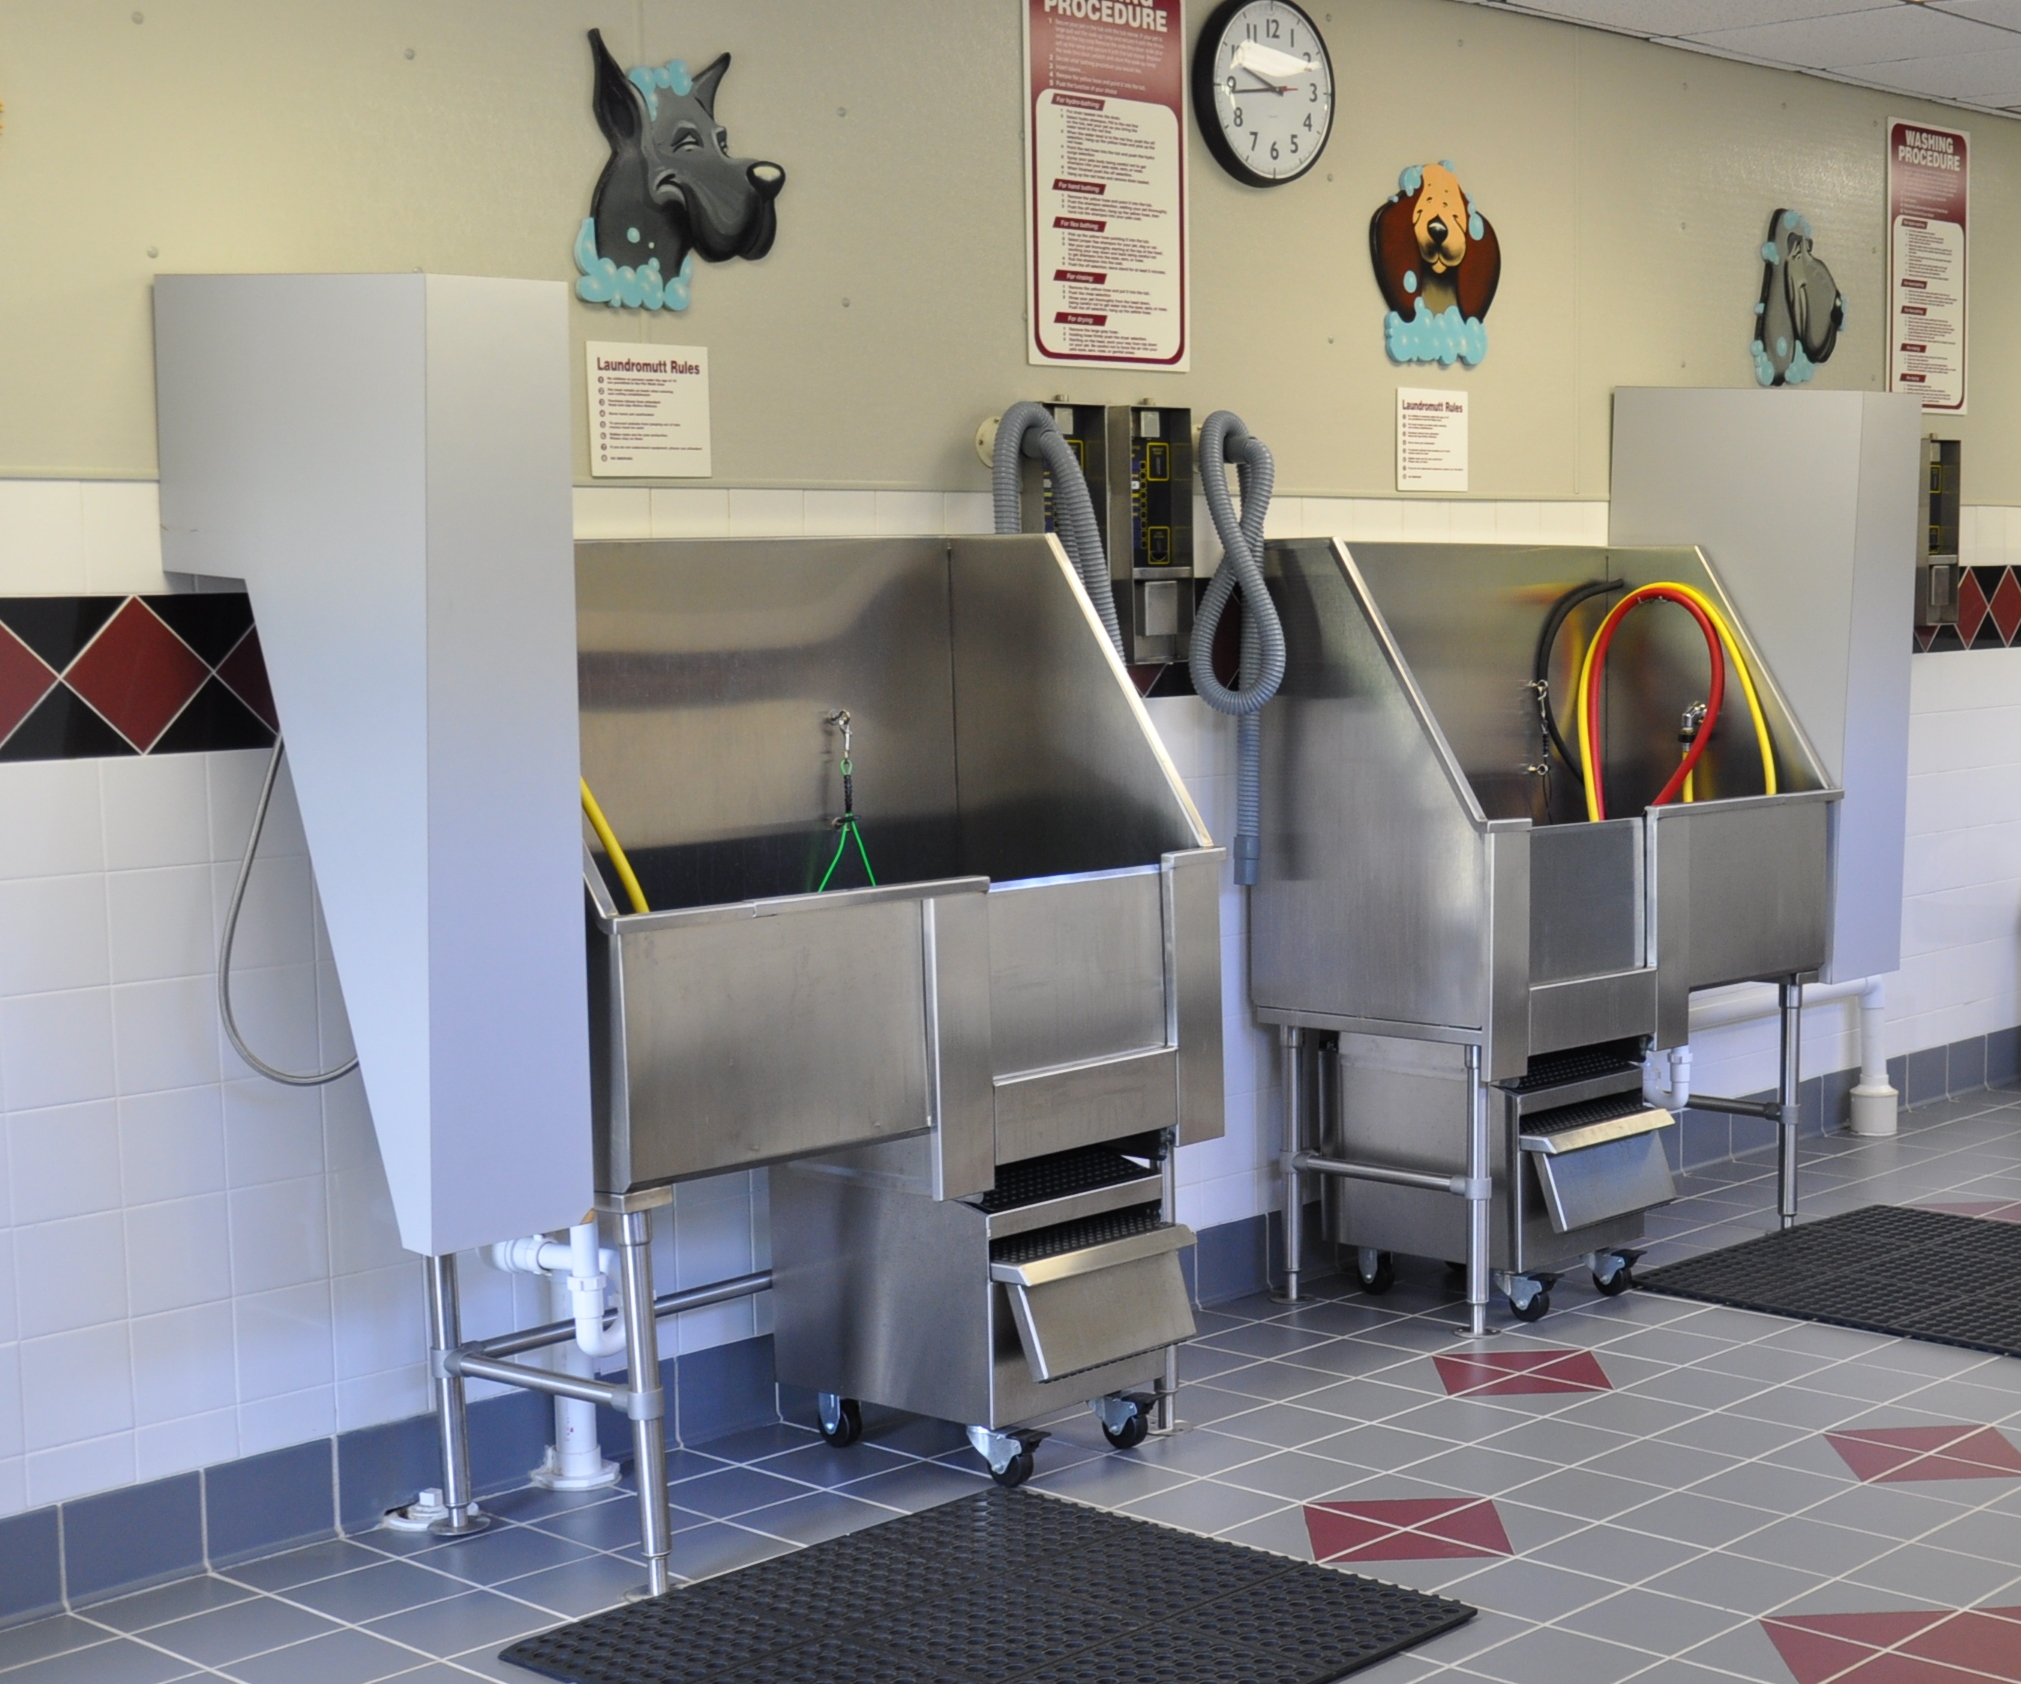 Commercial pet bath station in apartment building